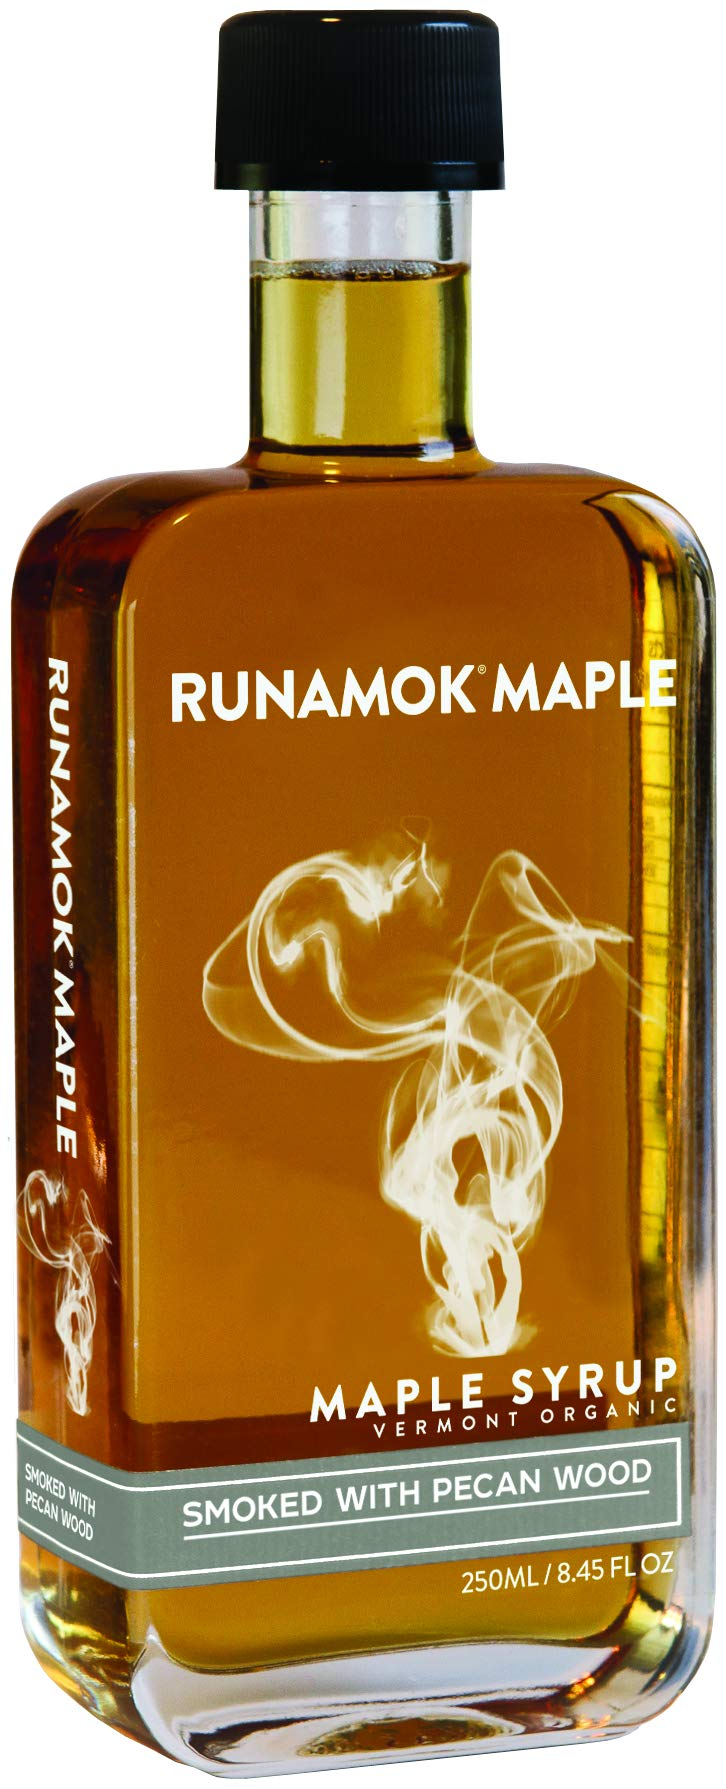 Runamok Maple Pecan Wood Smoked Maple Syrup - Authentic & Real Vermont Maple Syrup | Strong Flavor | Great for BBQ, Broiled Salmon, Vinaigrettes & Cocktails | 8.45 Fl Oz (250mL)